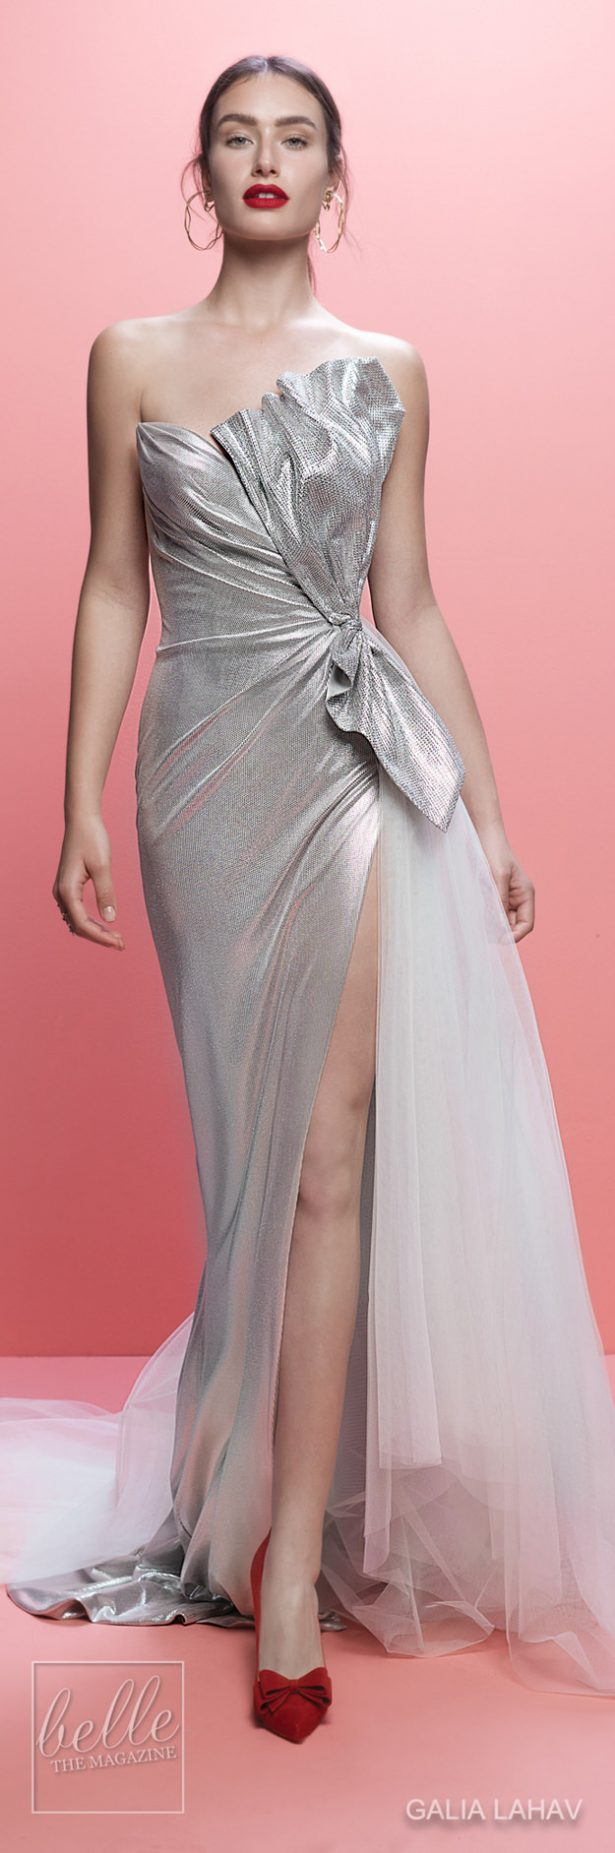 Wedding Dresses By Galia Lahav Couture Bridal Spring 2019 Collection- Queen of Hearts - Arden